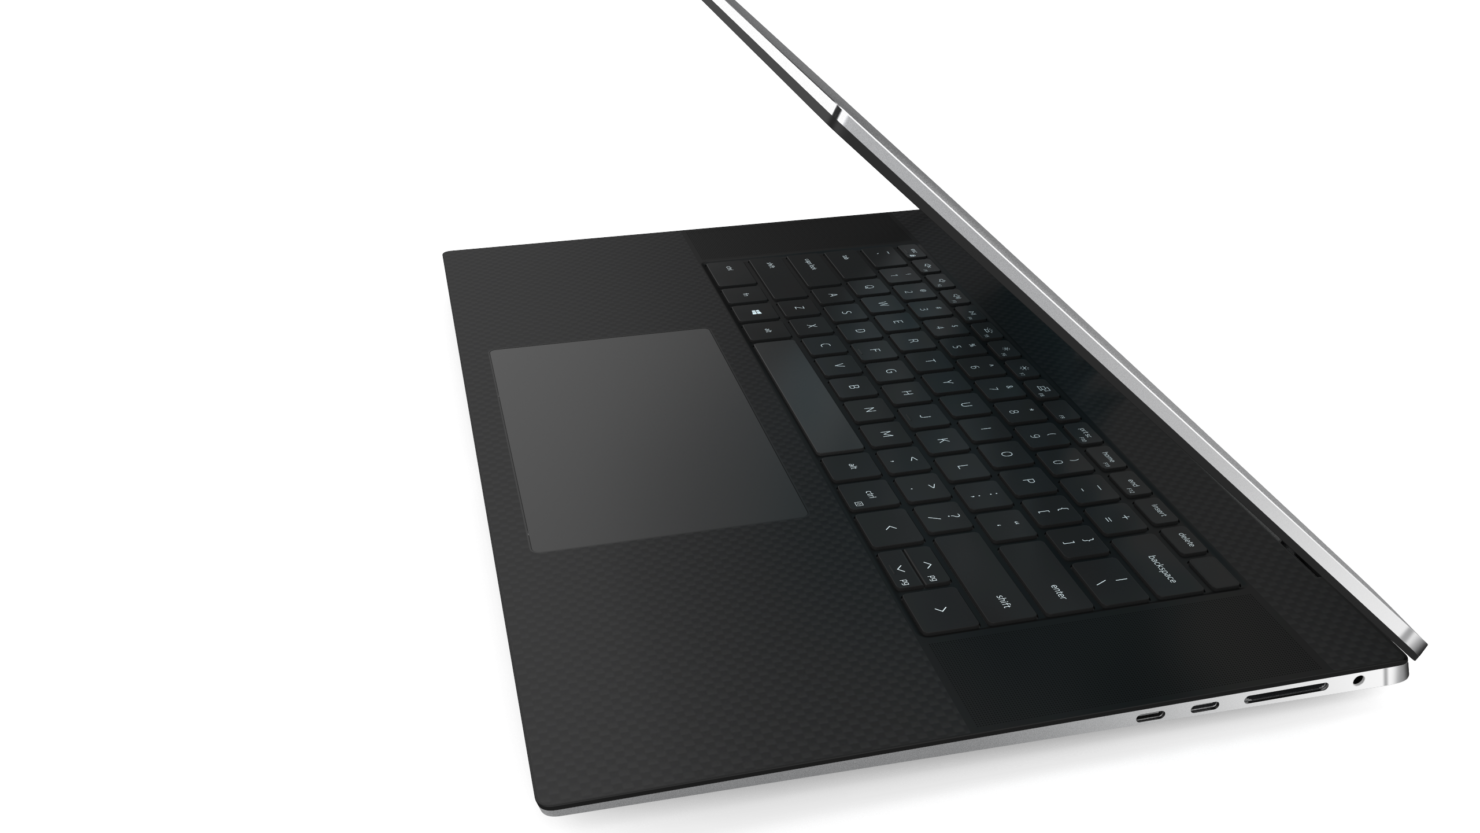 xps17_front_left_angle_closing-custom